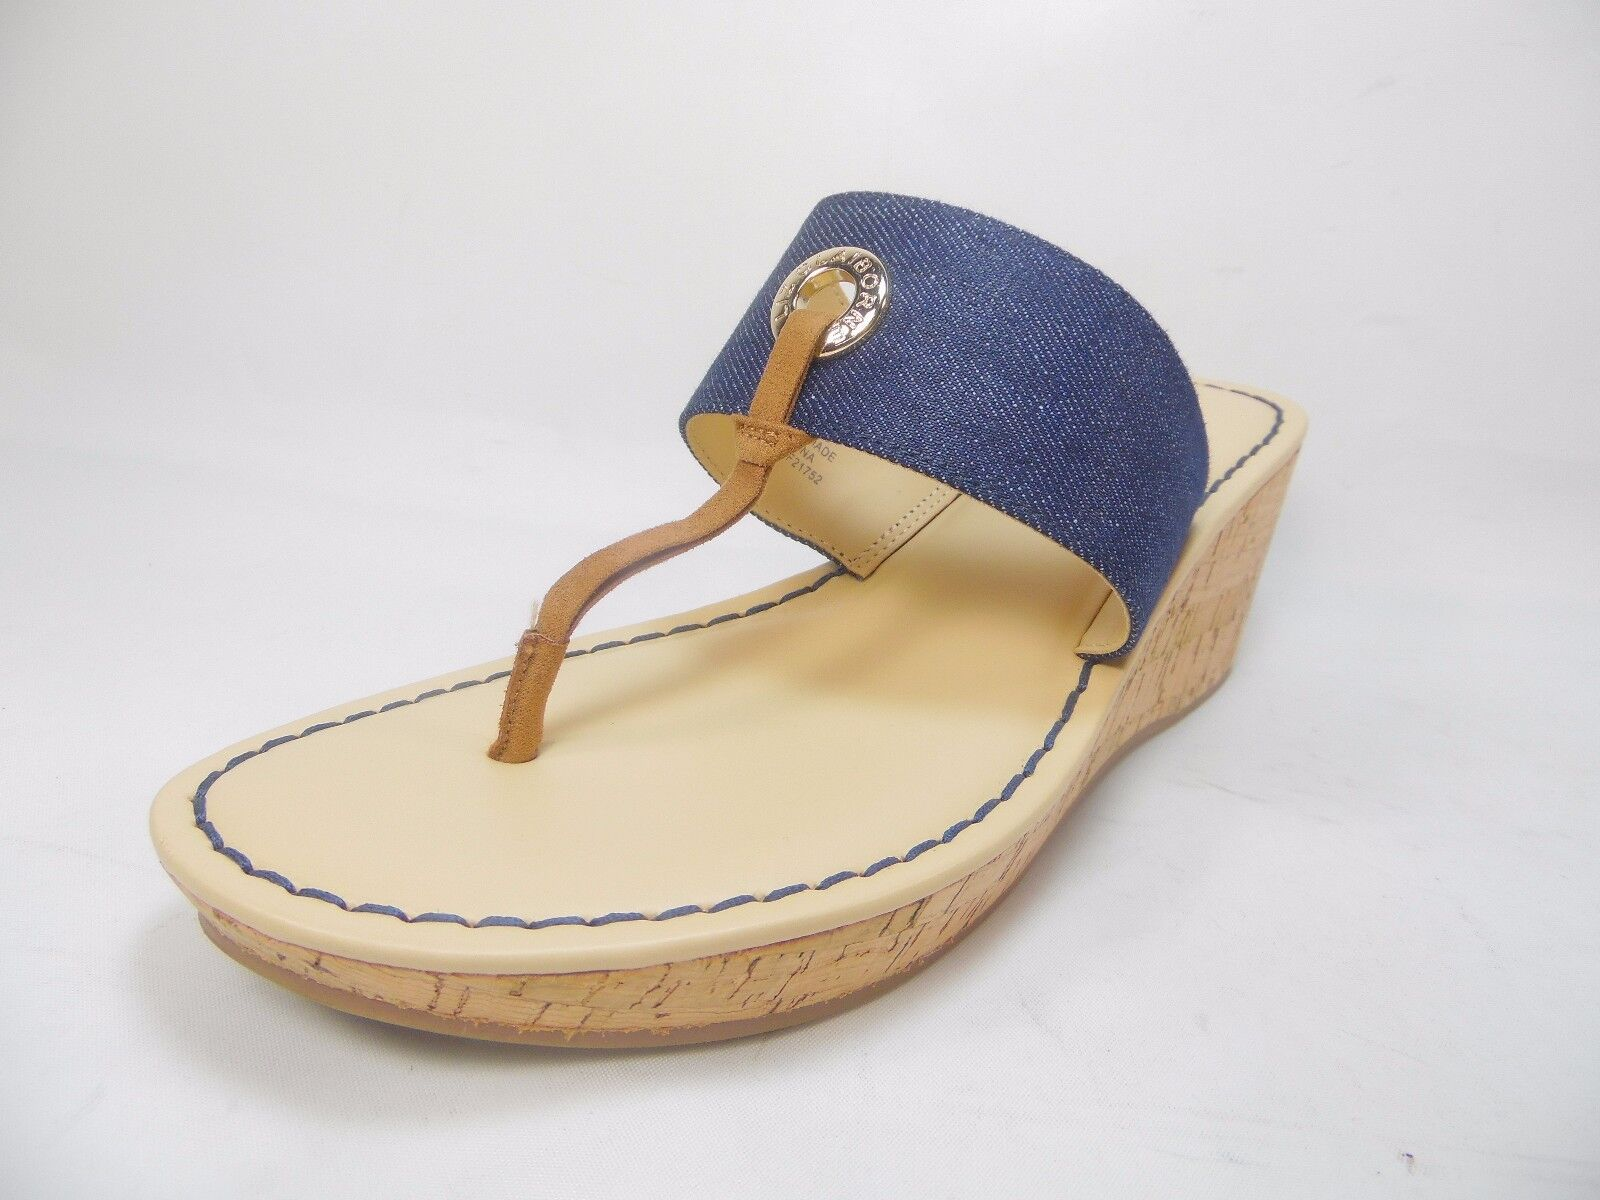 Liz Claiborne Lively Womens Sandals  8M Denim Size 8M